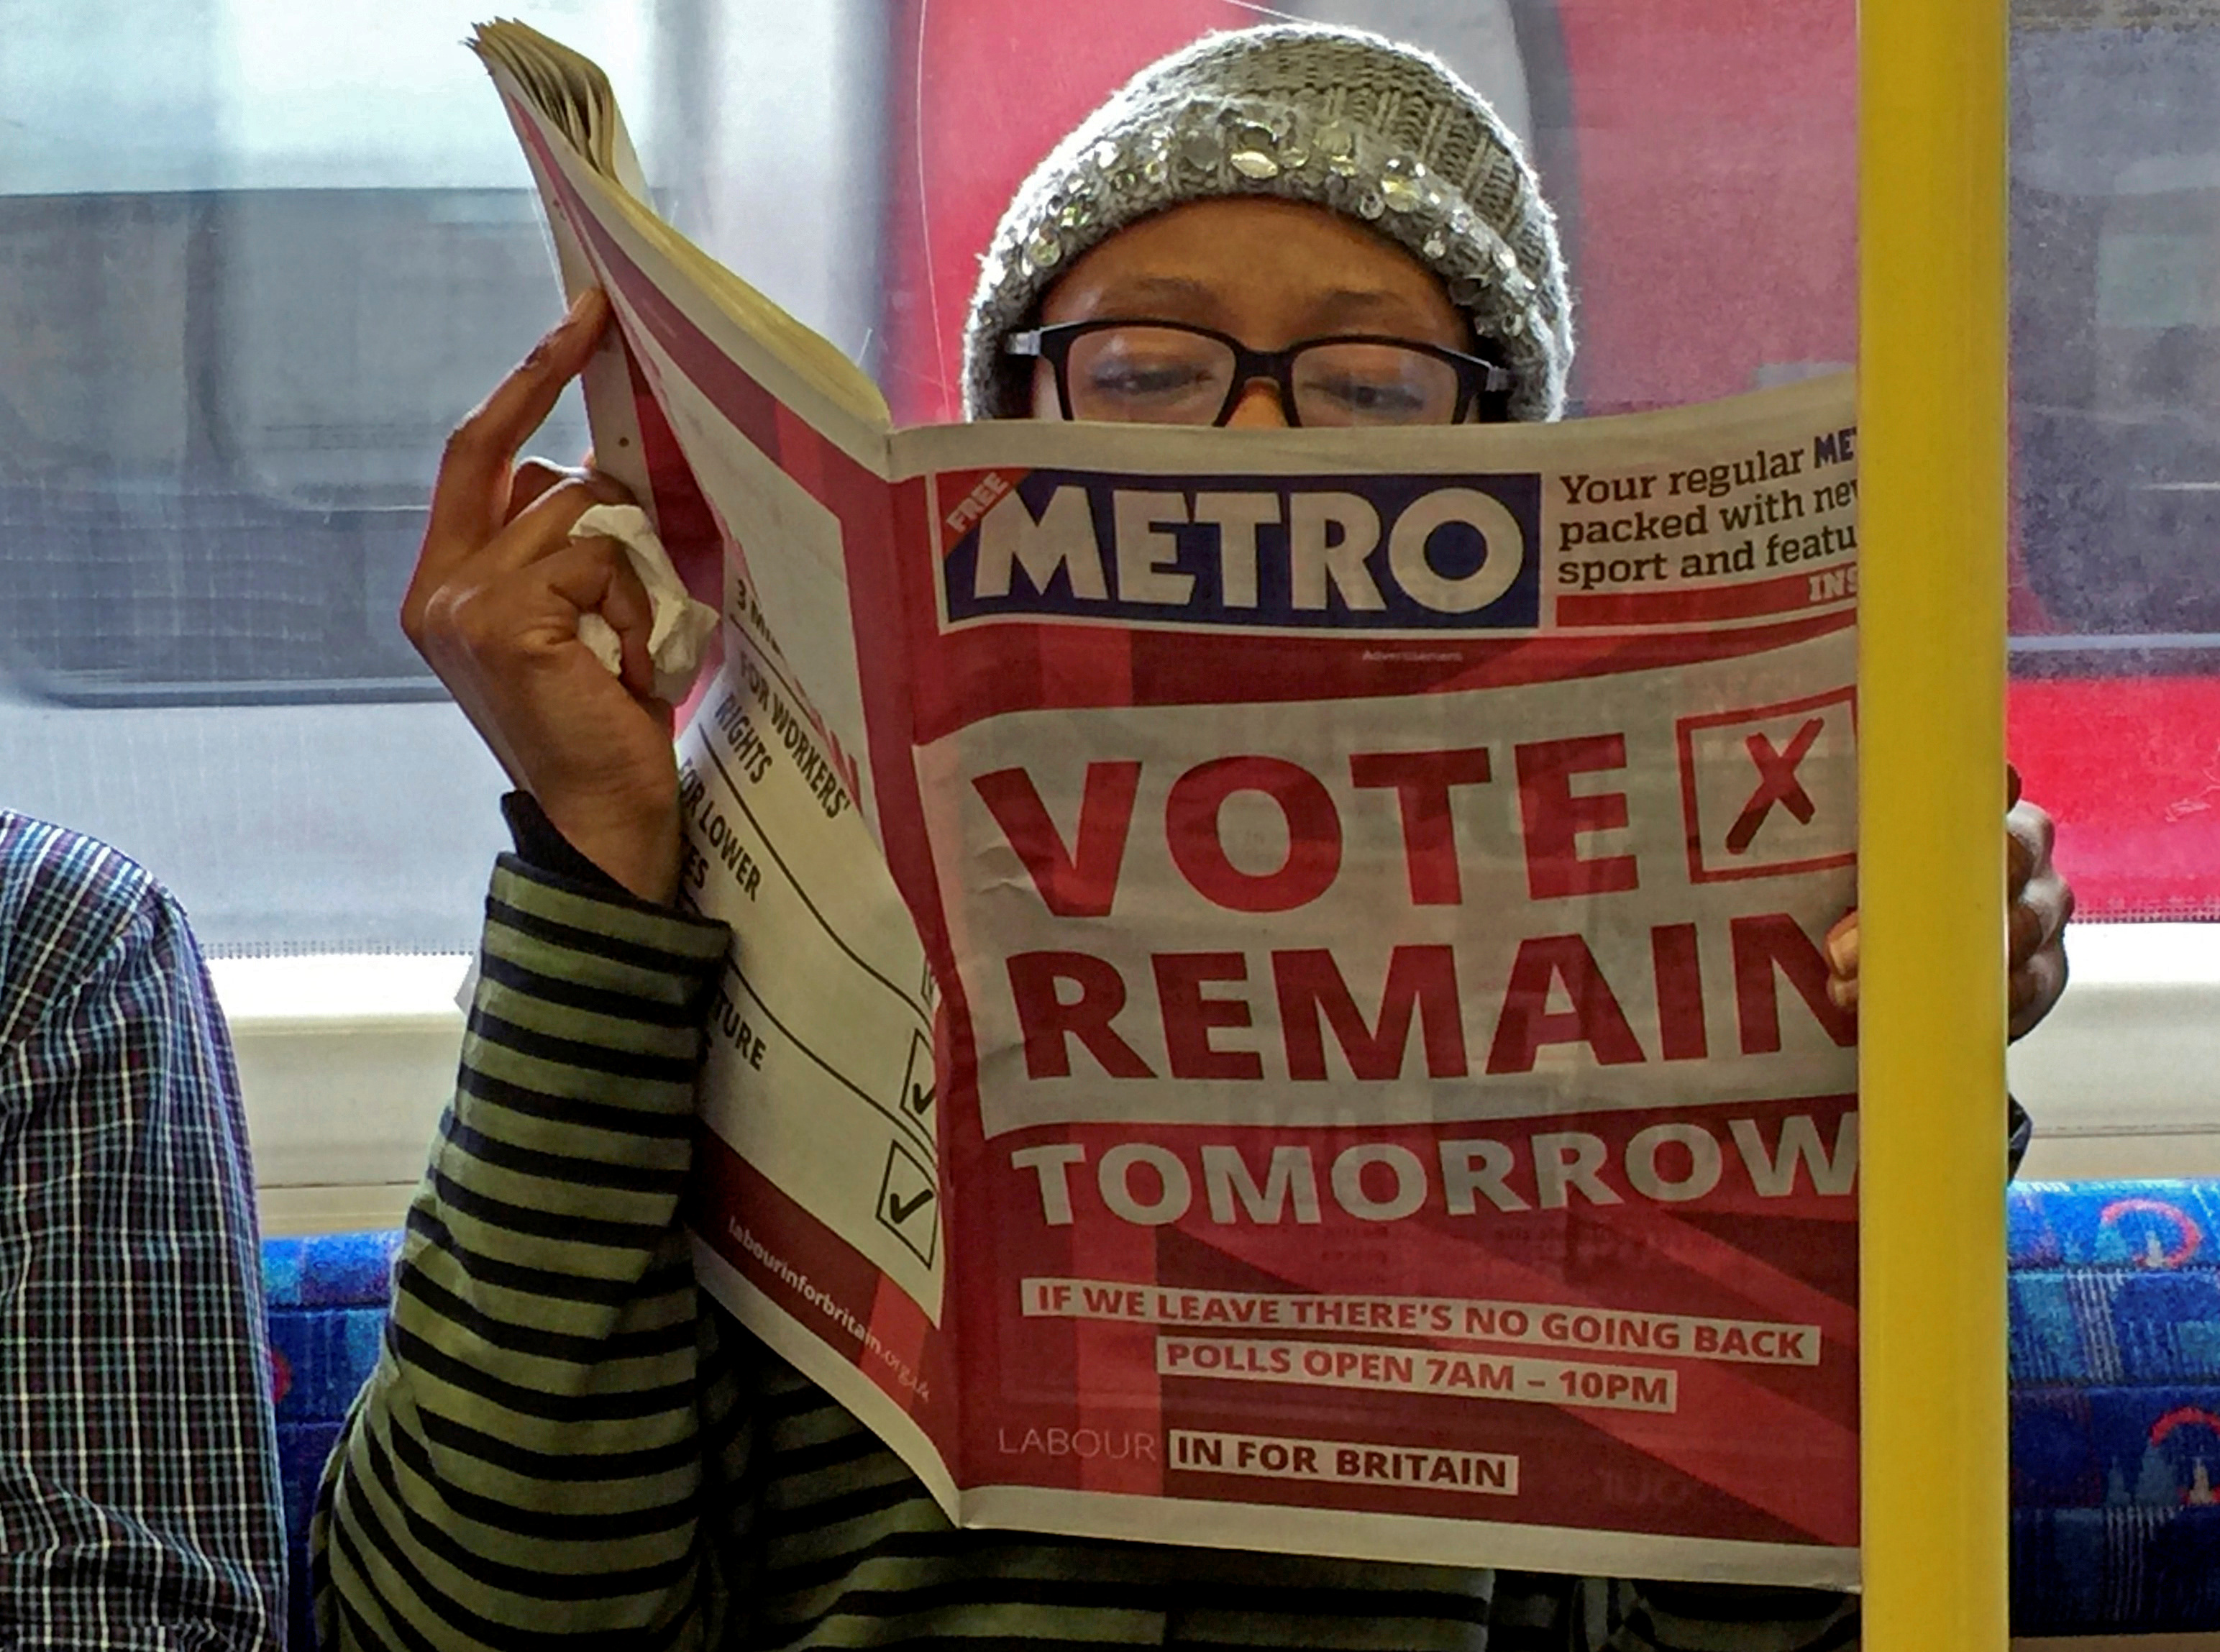 A woman reads a newspaper in London during the EU referendum campaign. REUTERS/Russell Boyce